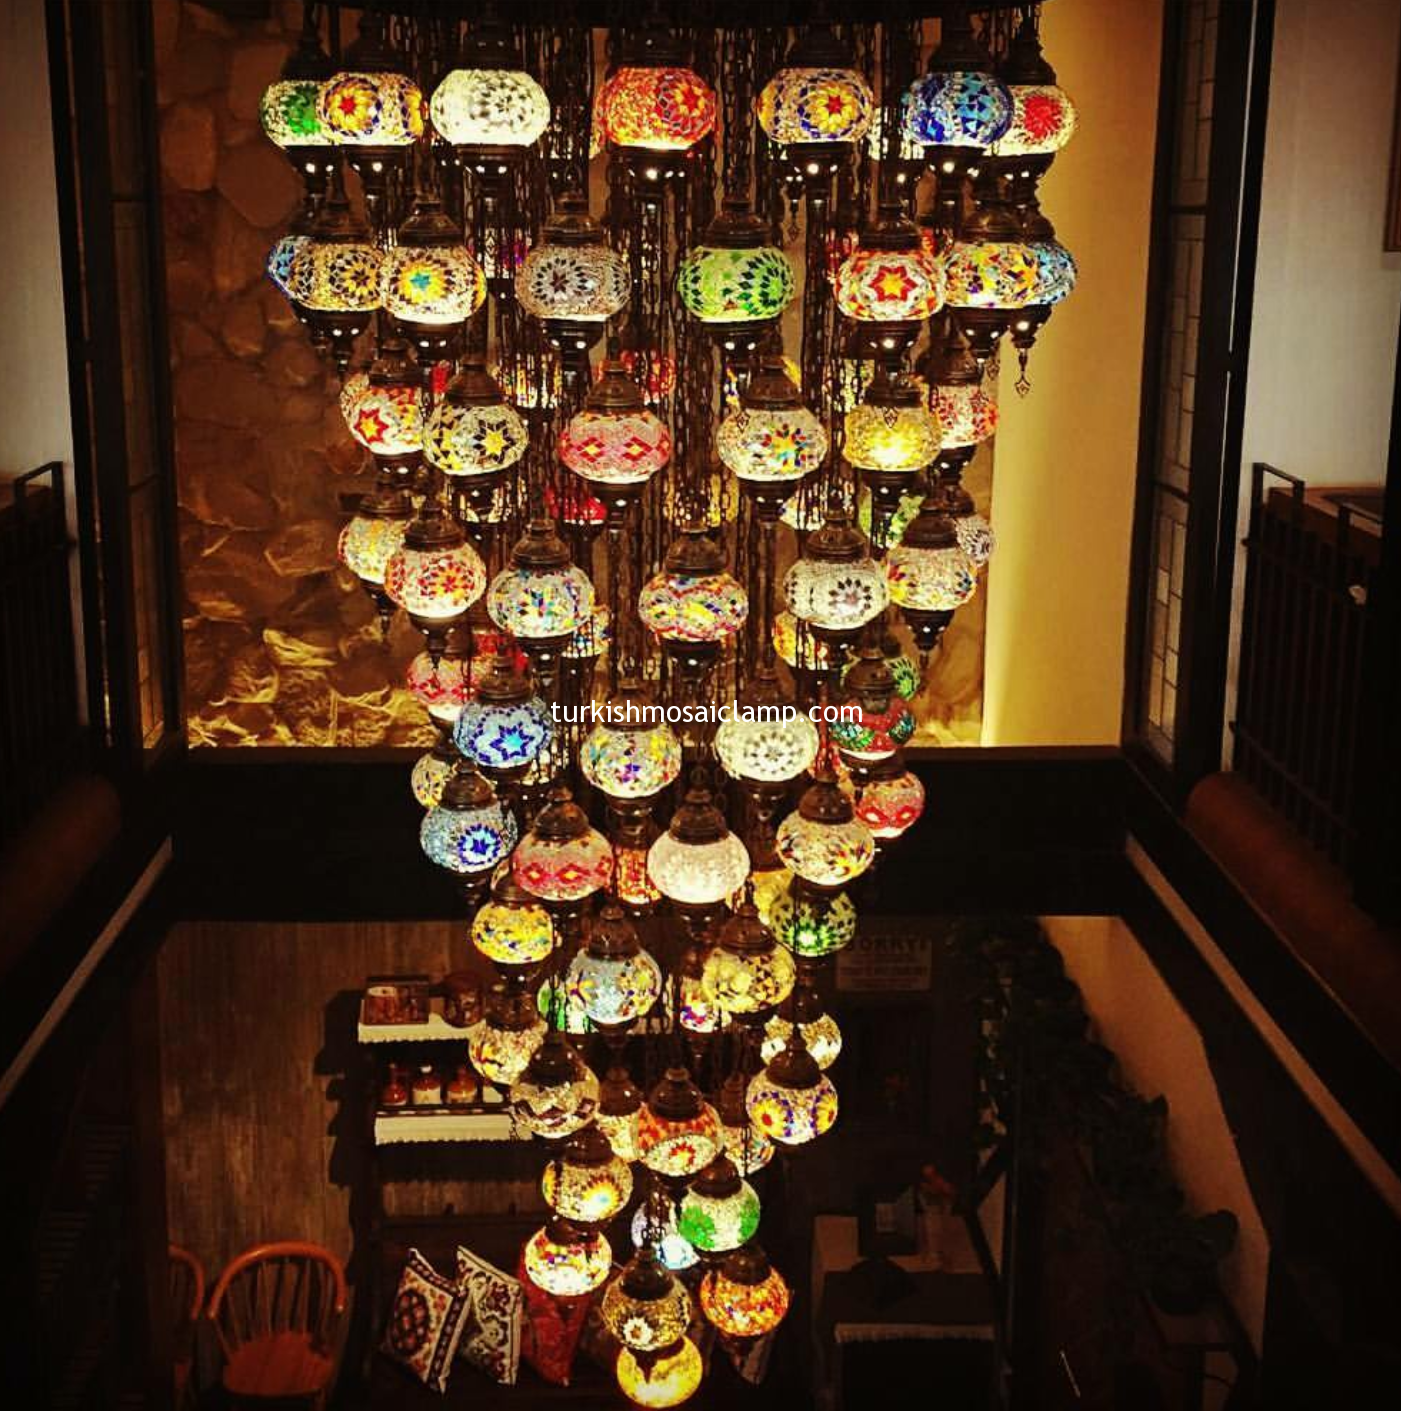 New Look Of Tourists Turkish Mosaic Lamps | Mosaic Turkish Lamps, Turkish Mosaic  Lamps,